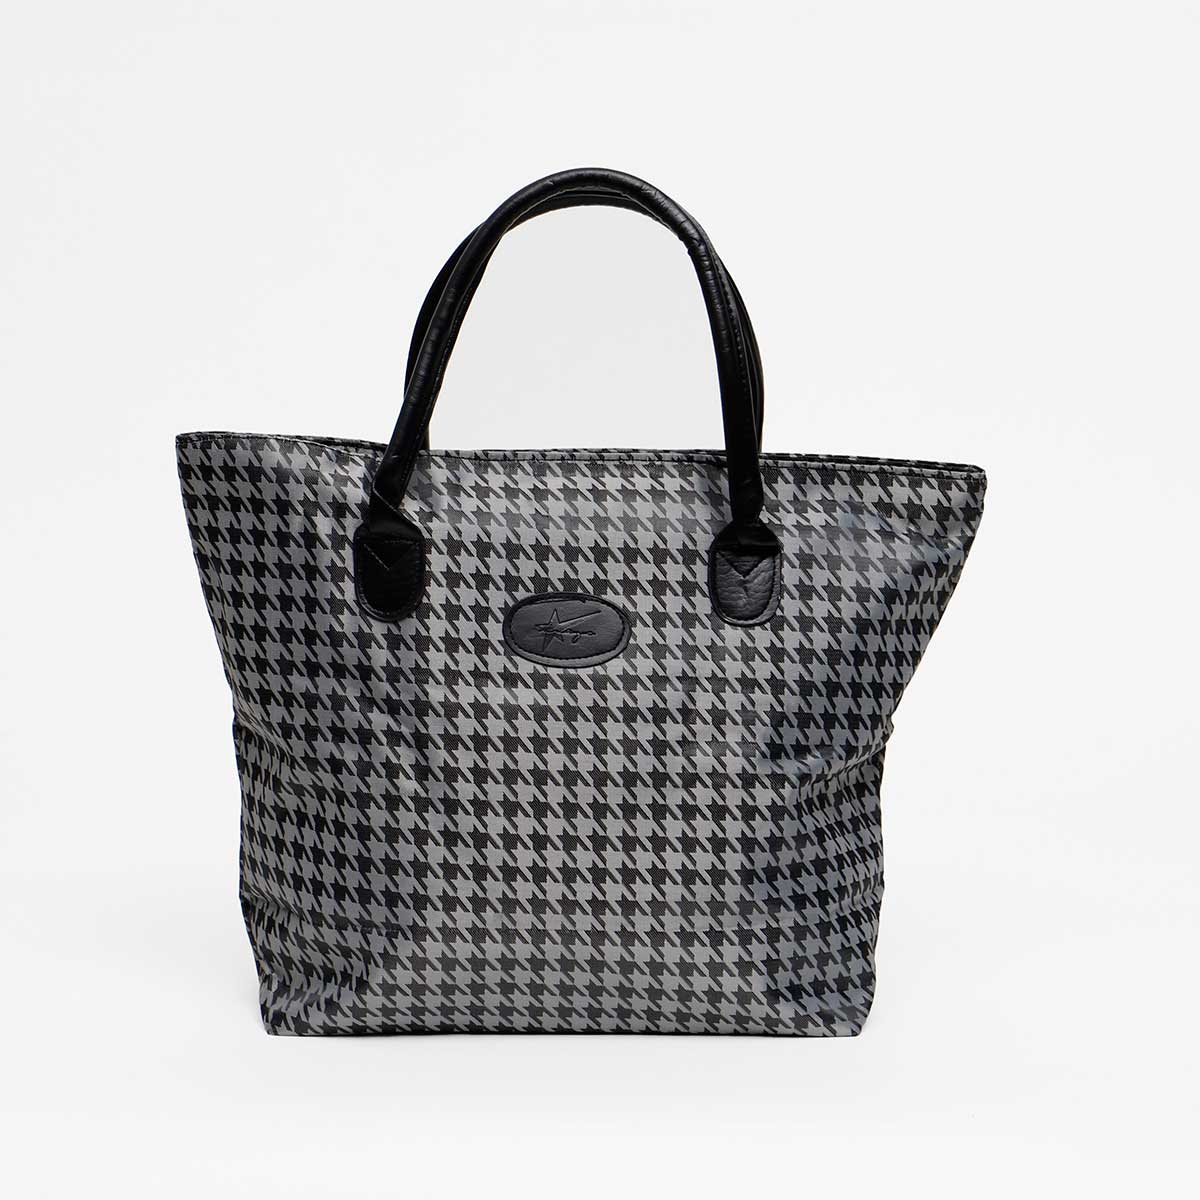 GRAY/BLACK HOUNDSTOOTH TRAVEL SIGNATURE TOTE WITH LOGO